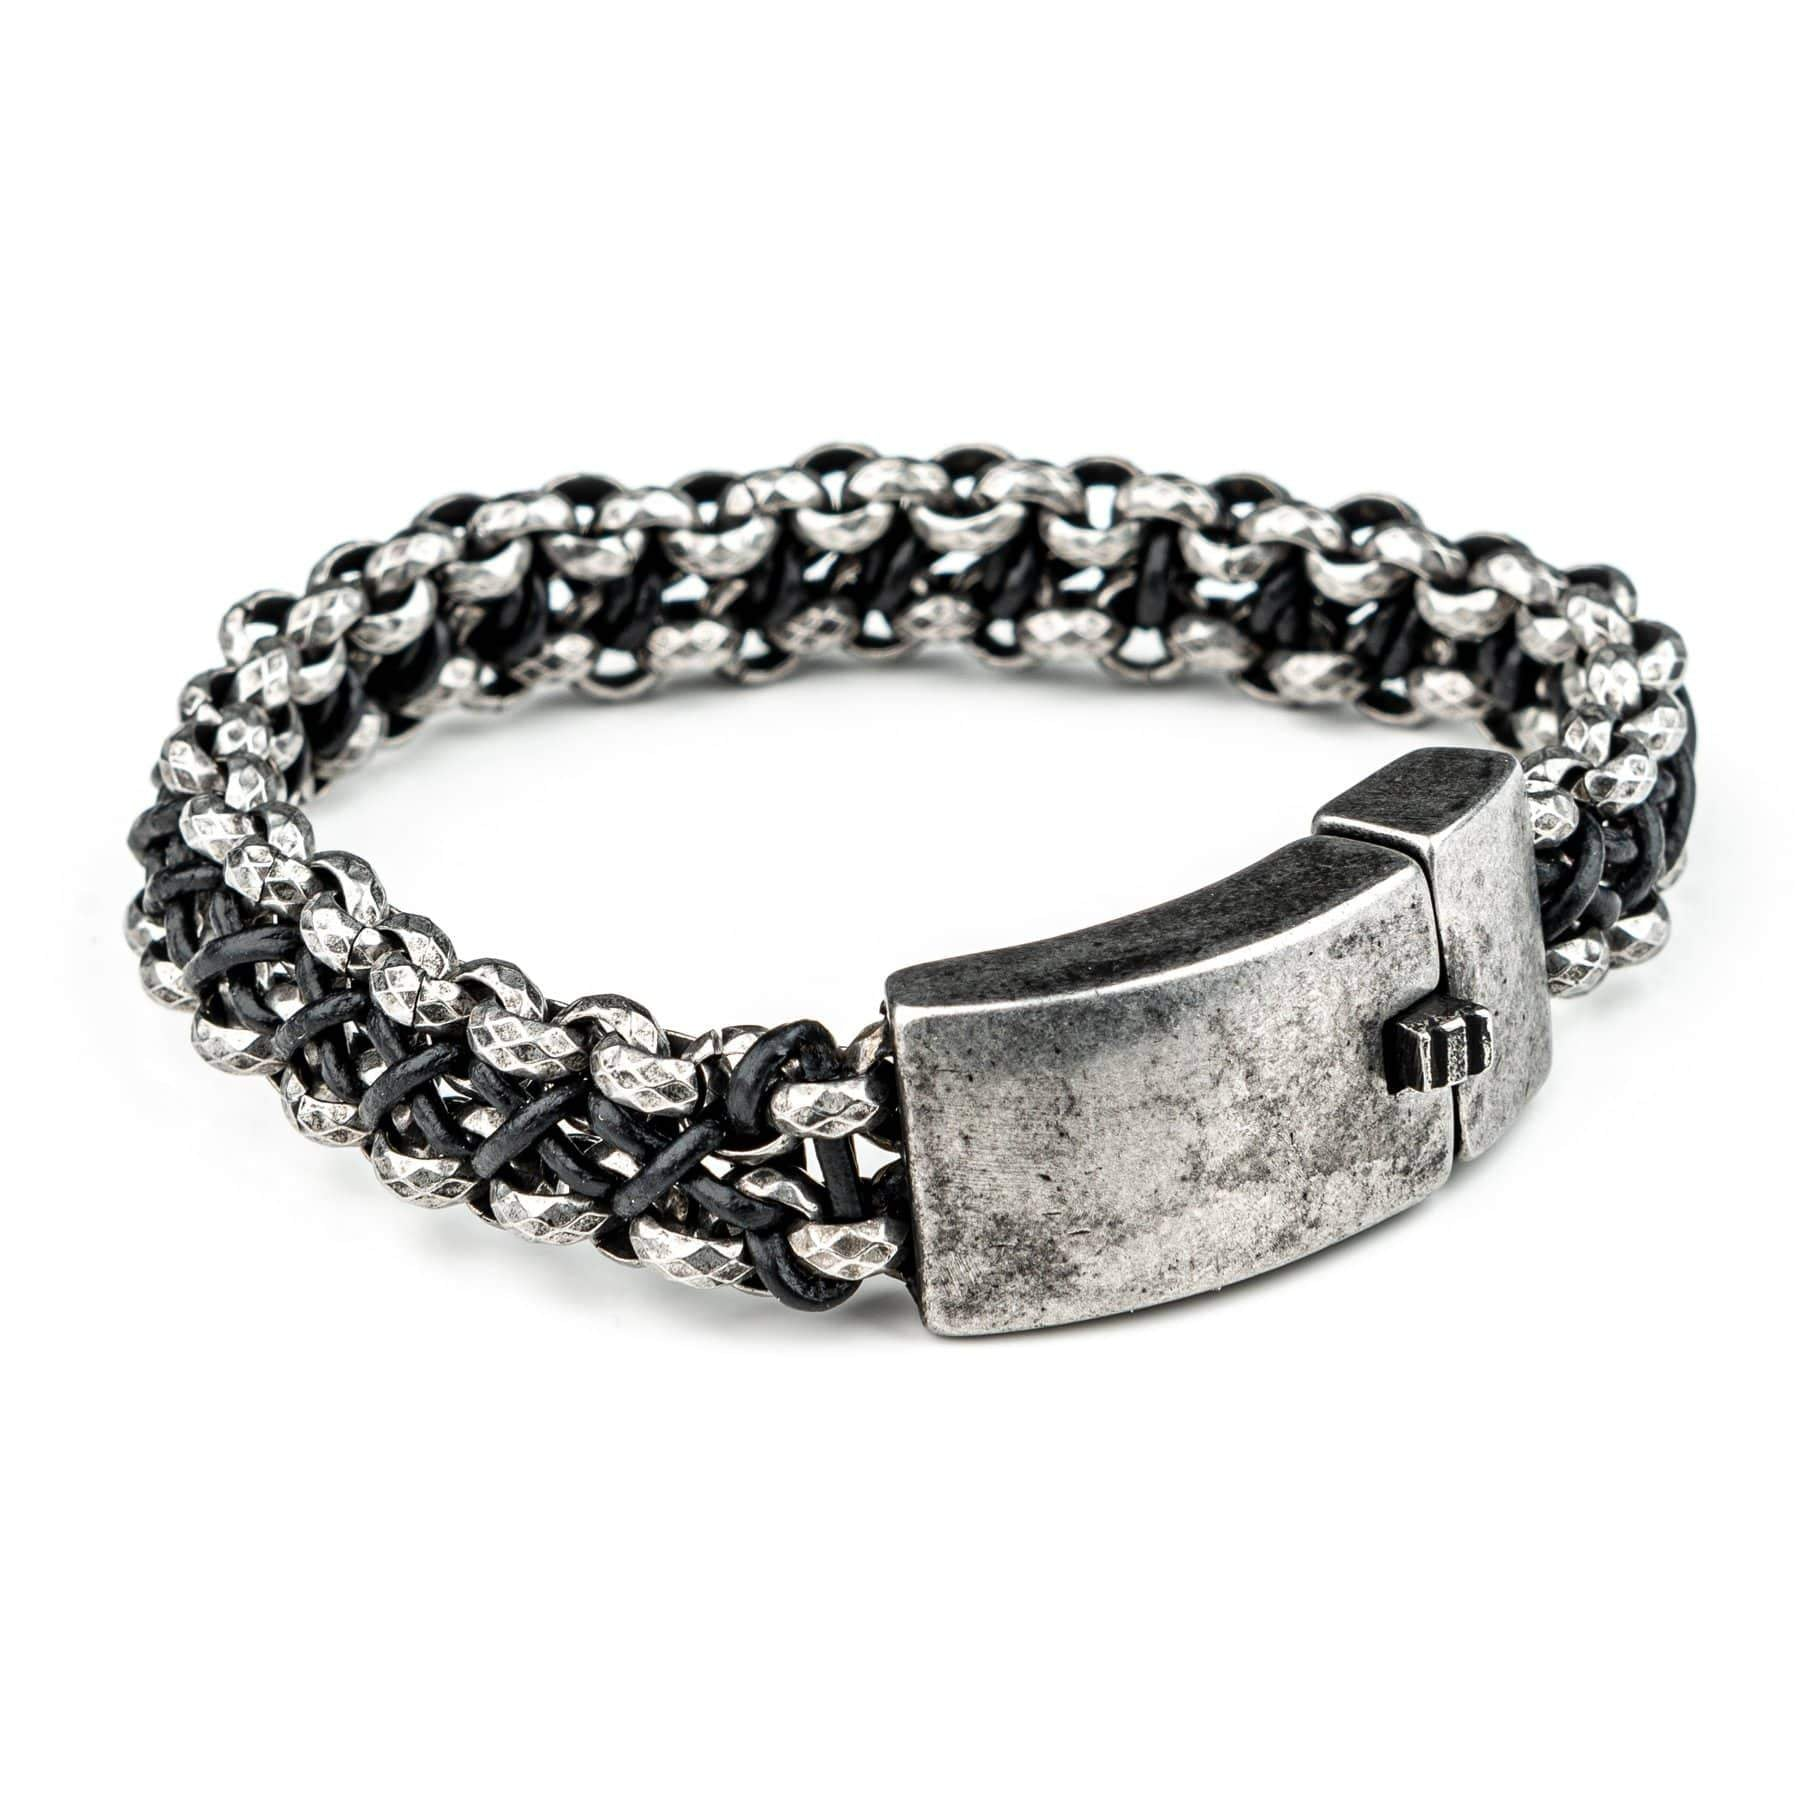 Wornstar Clothing Double Nexus stainless steel chain bracelet with braided leather.